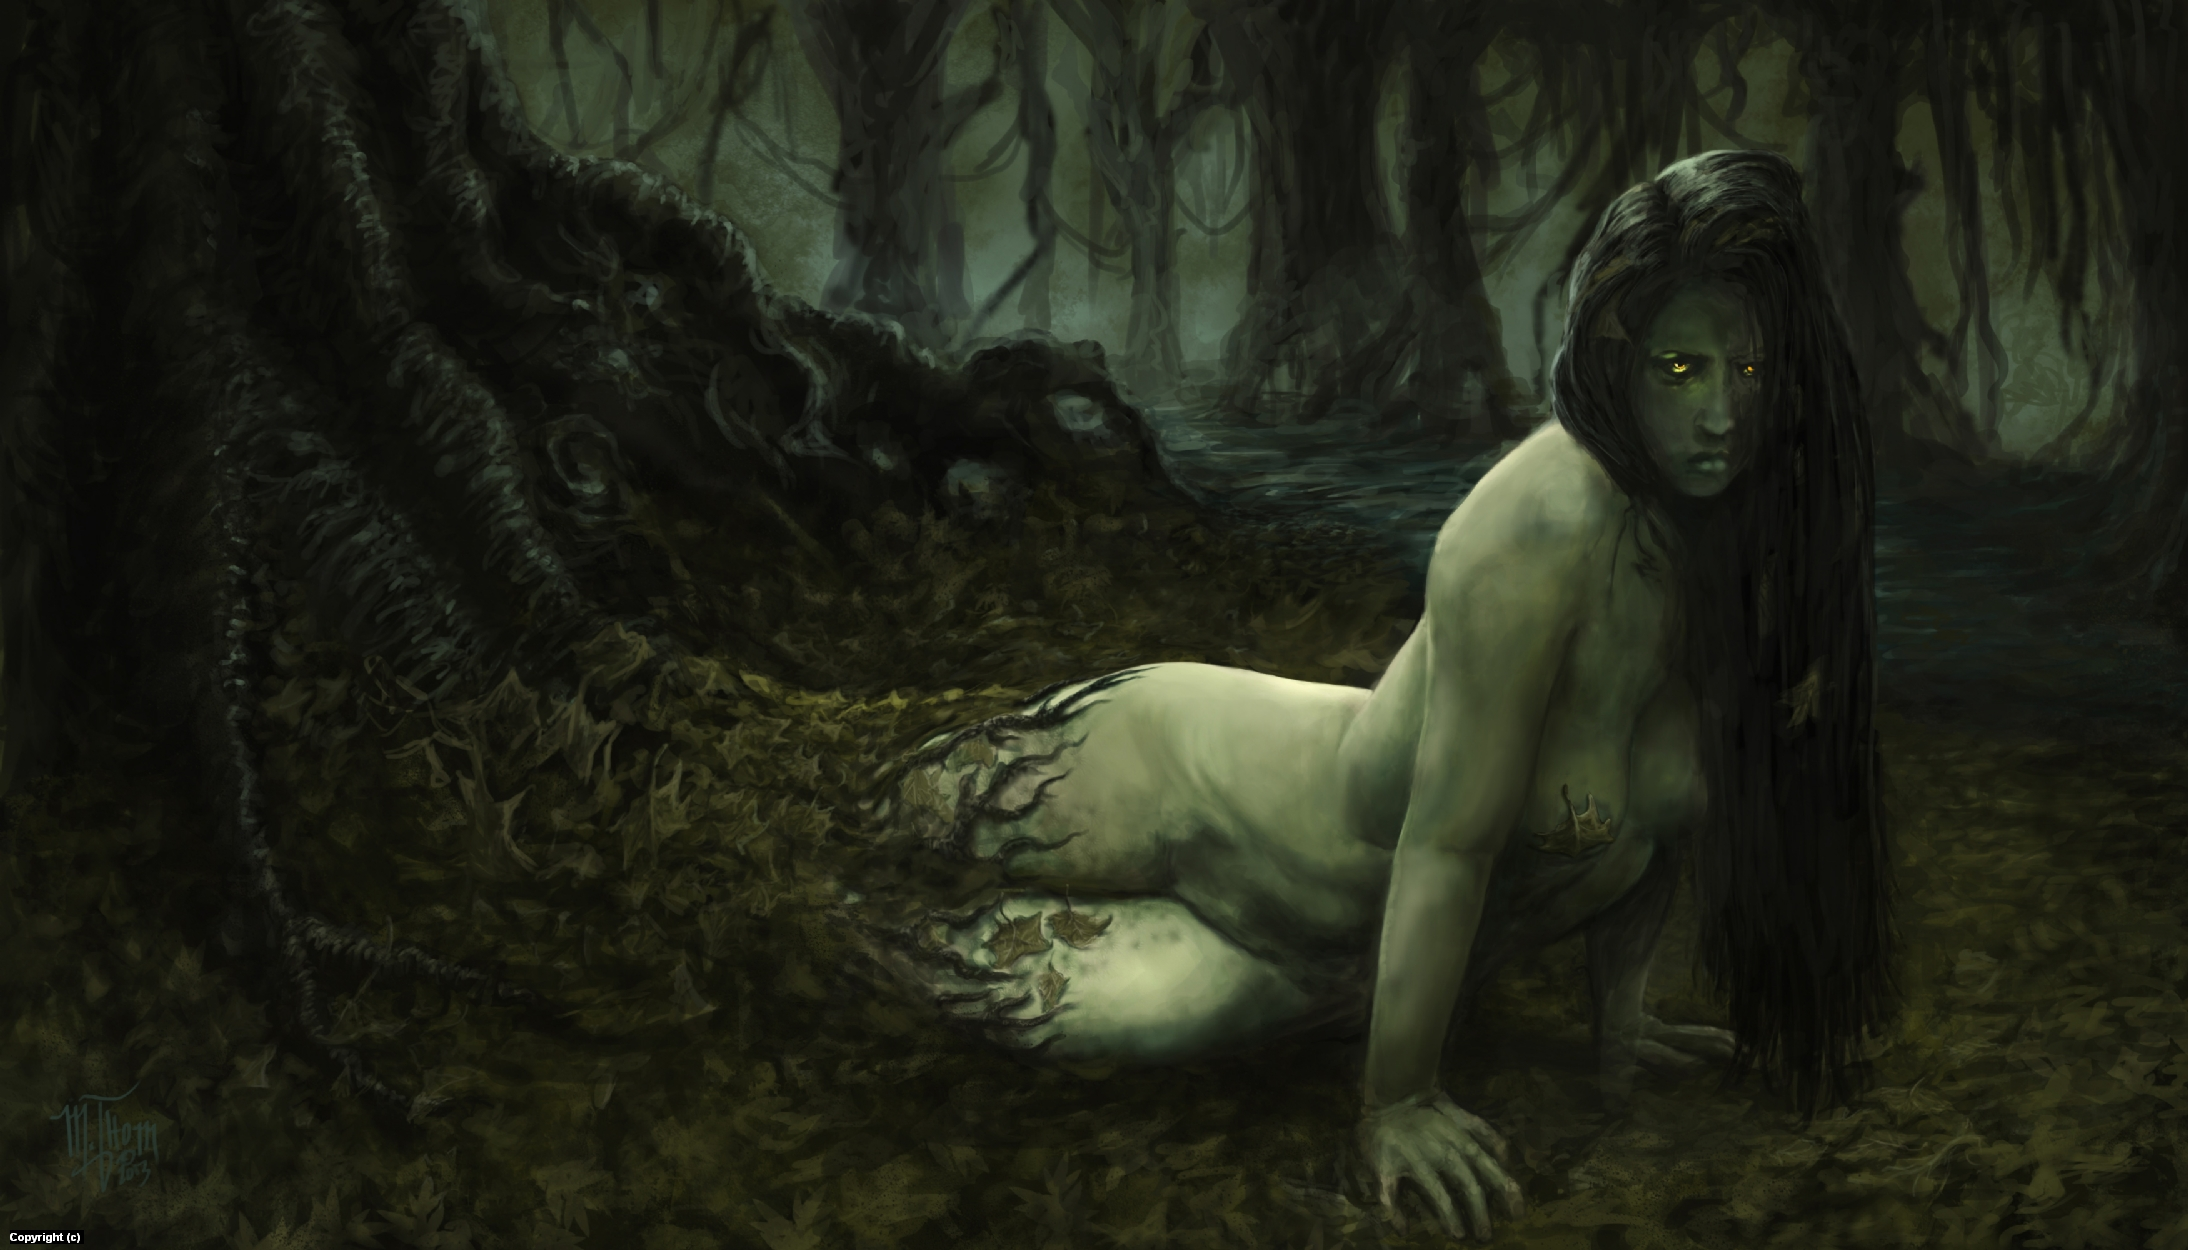 Swamp Nymph Artwork by Michael Thom